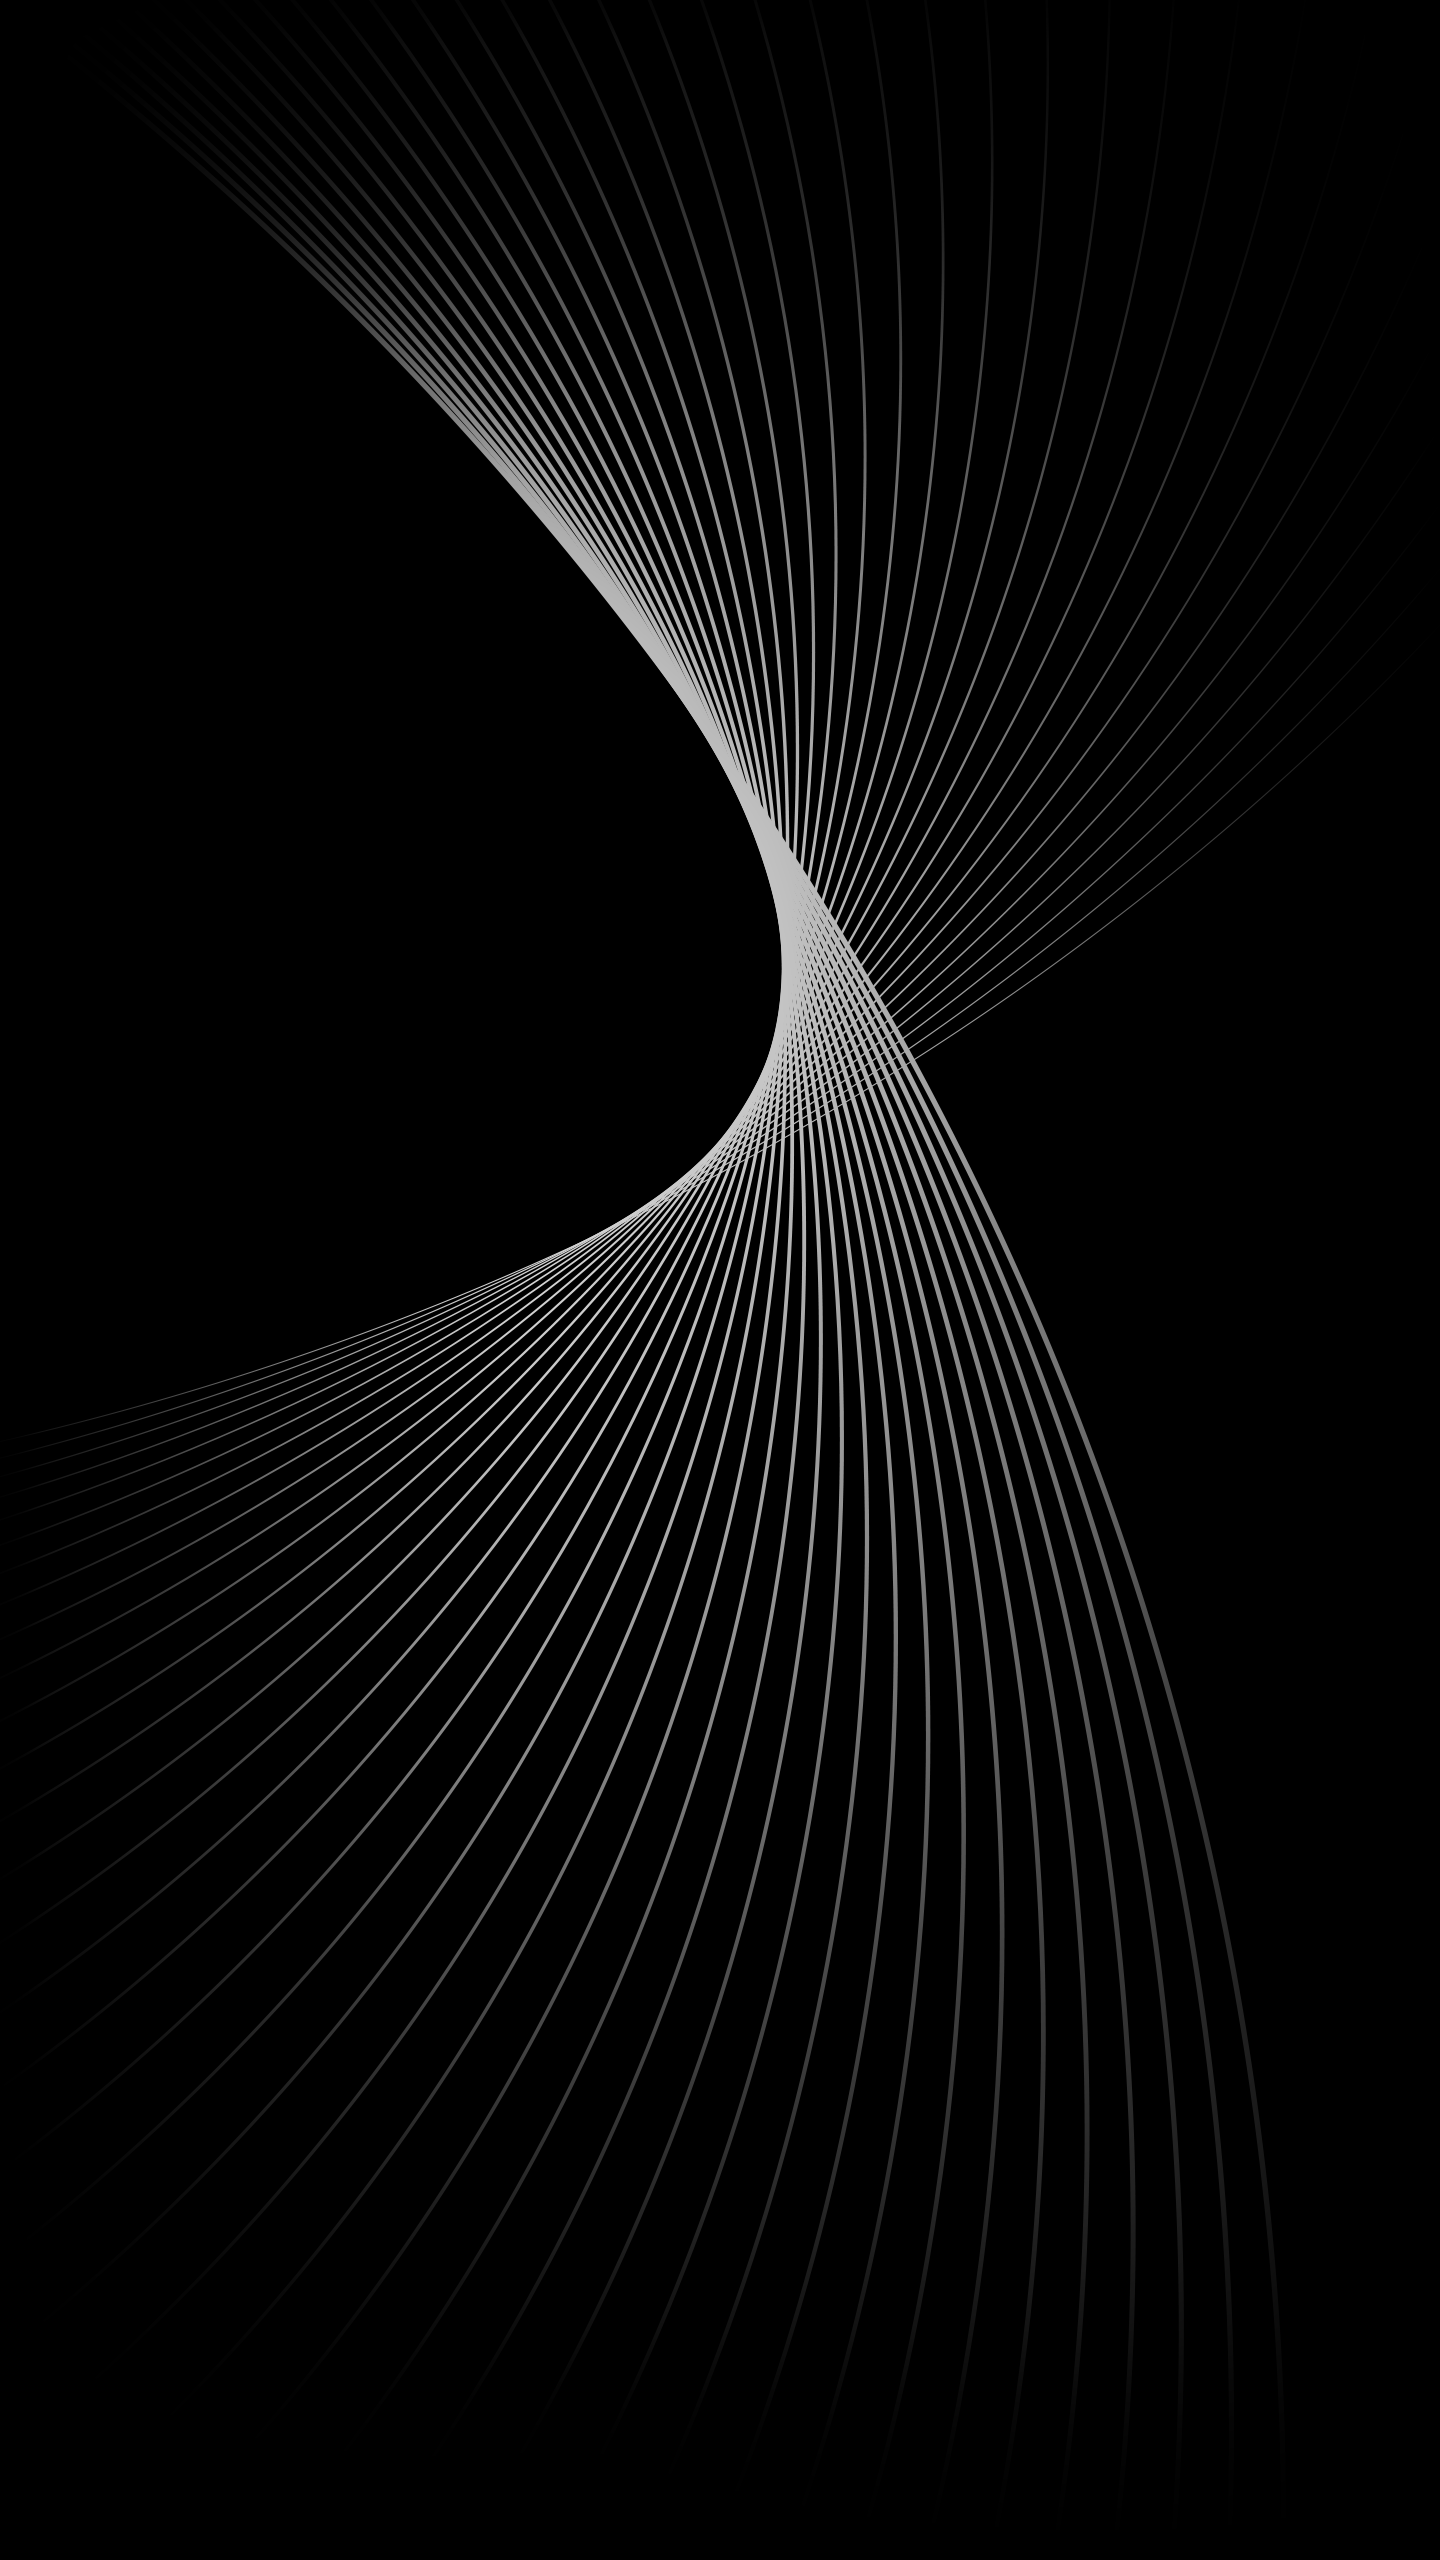 file to download for black and white curves for oneplus 3 wallpaper